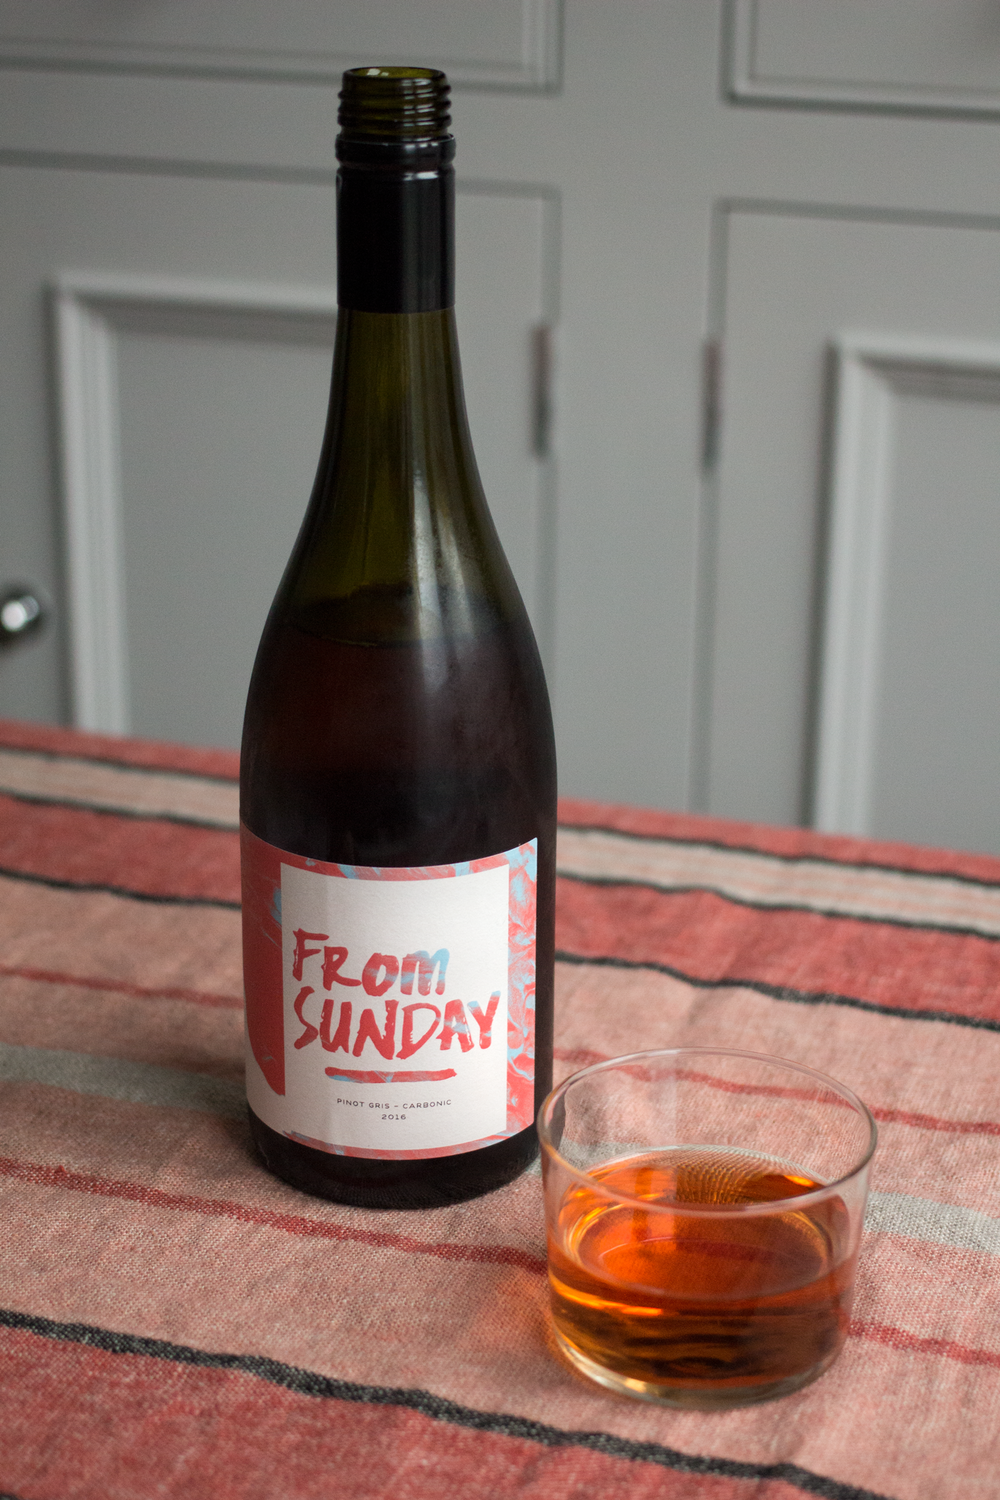 Bottle-Bitches-Rosé-Wine-Review-of-From-Sunday-Carbonic-Pinot-Gris-from-Australia.png